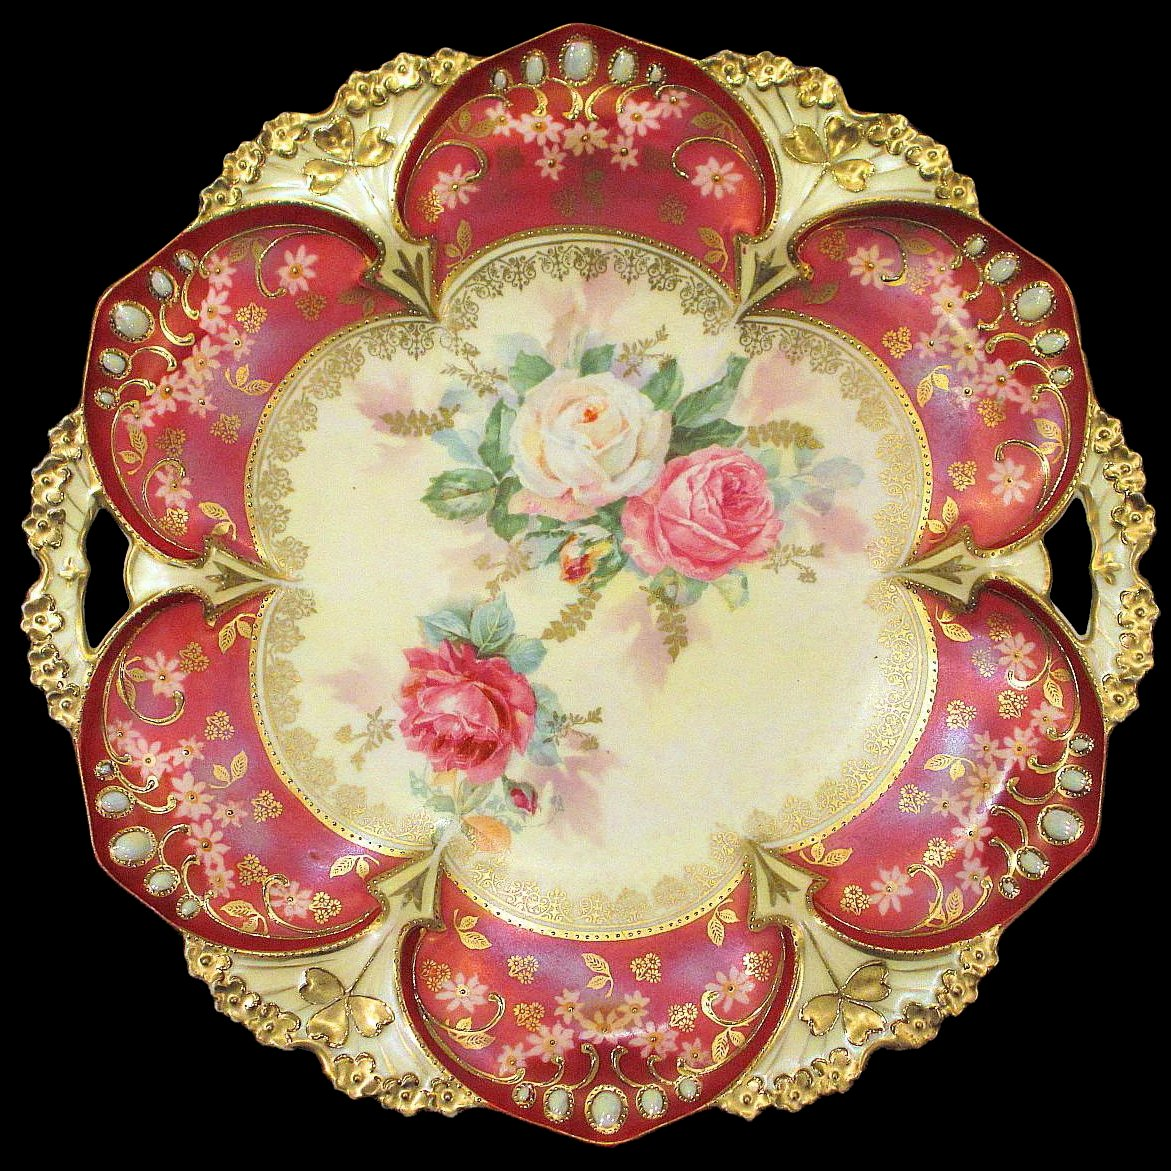 Ruby Red Cake Plate